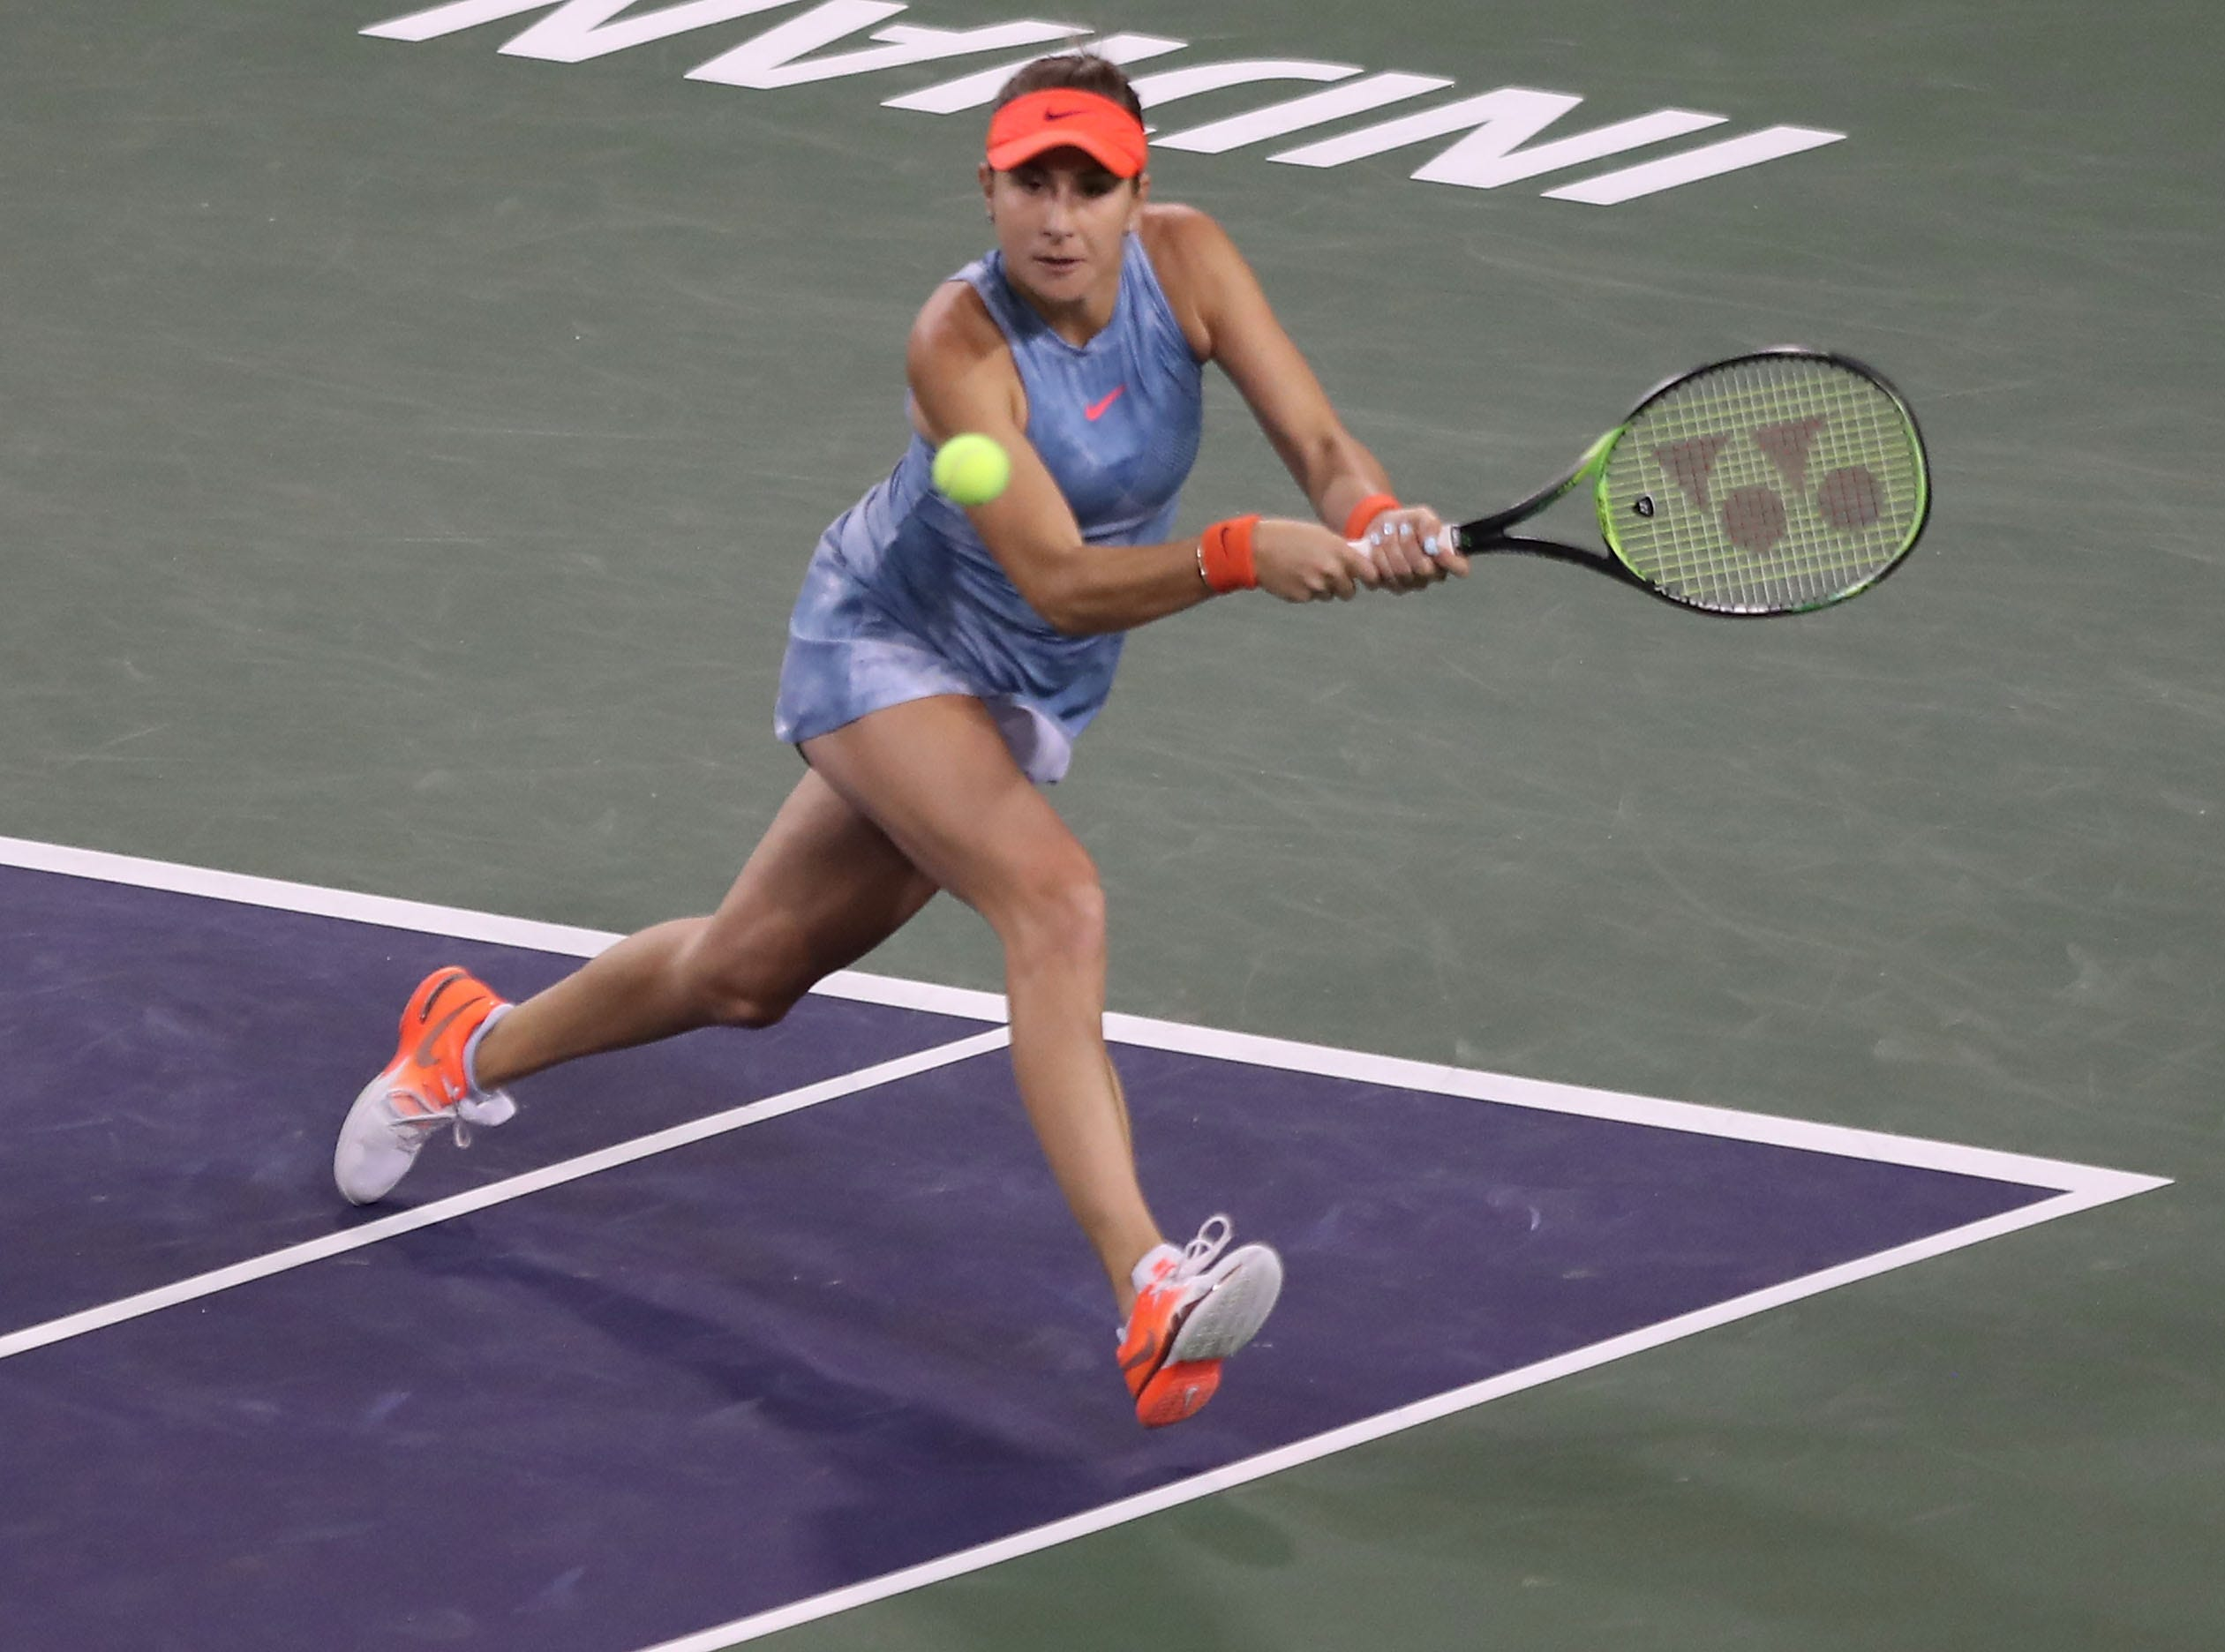 Belinda Bencic hits during her loss to Angelique Kerber in the semifinal match at the BNP Paribas Open in Indian Wells, March 15, 2019.